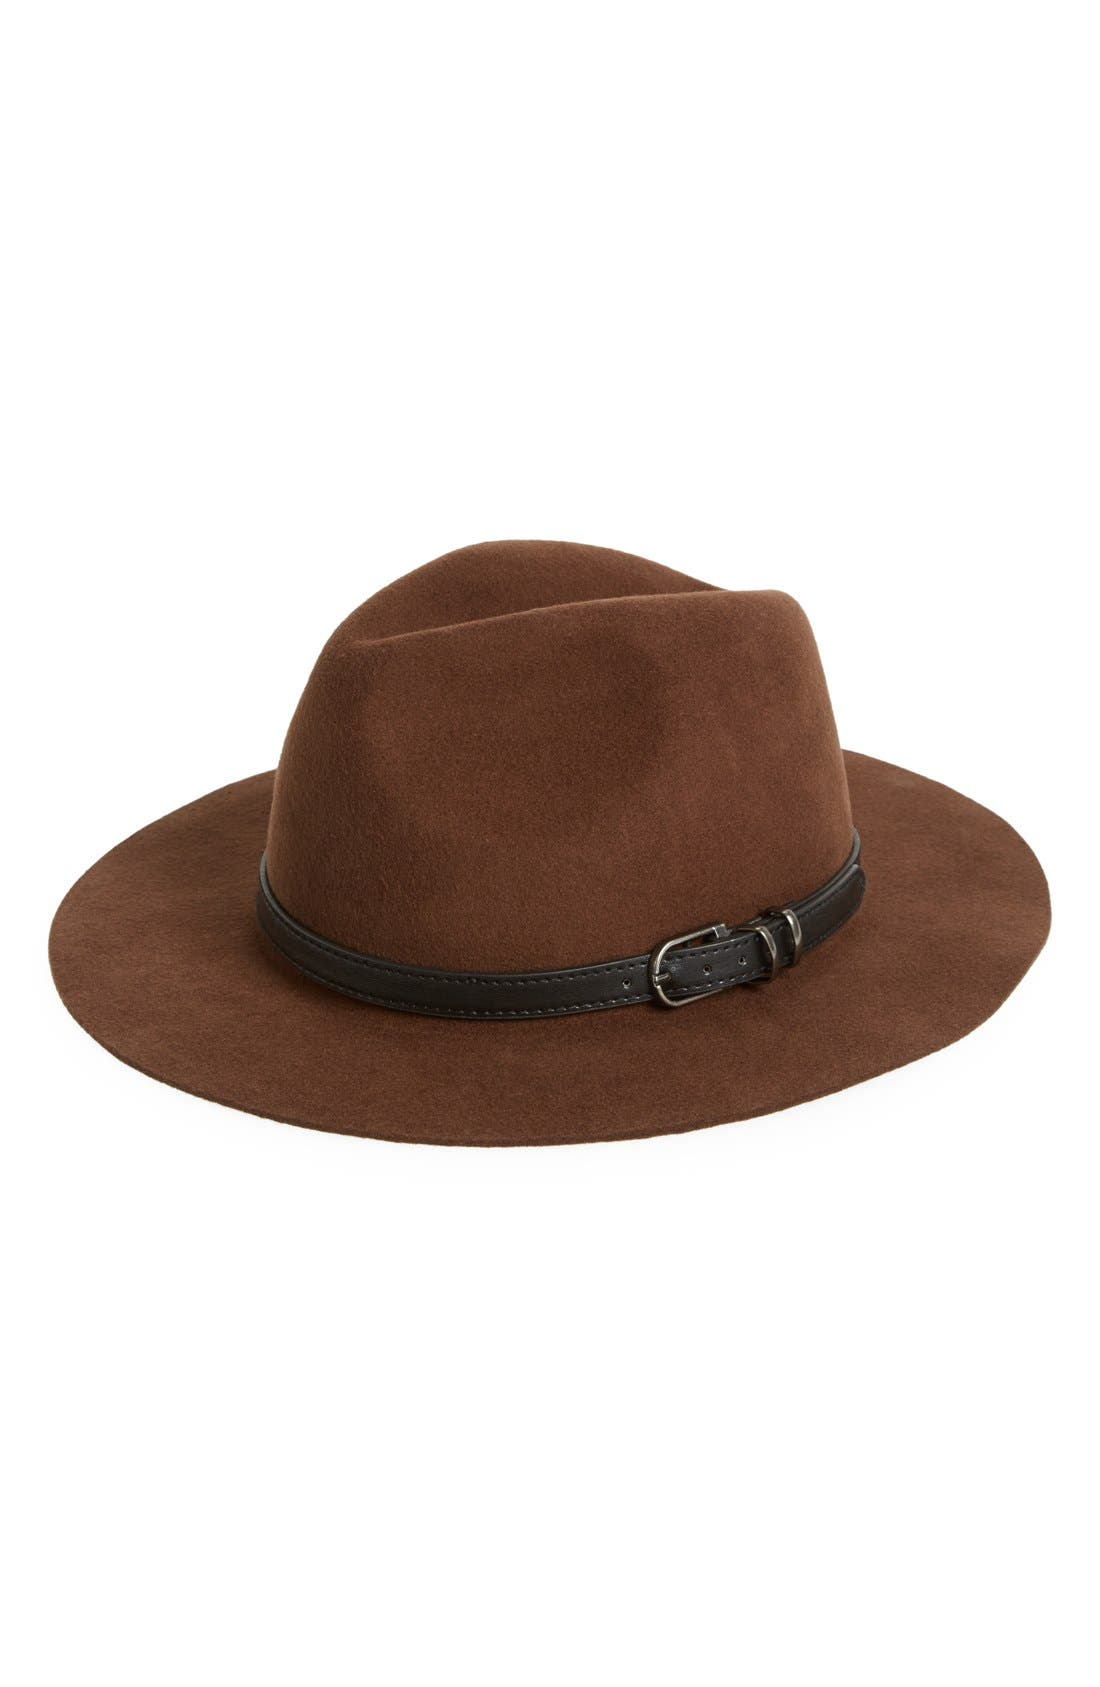 Main Image - Sole Society Wool Outback Hat